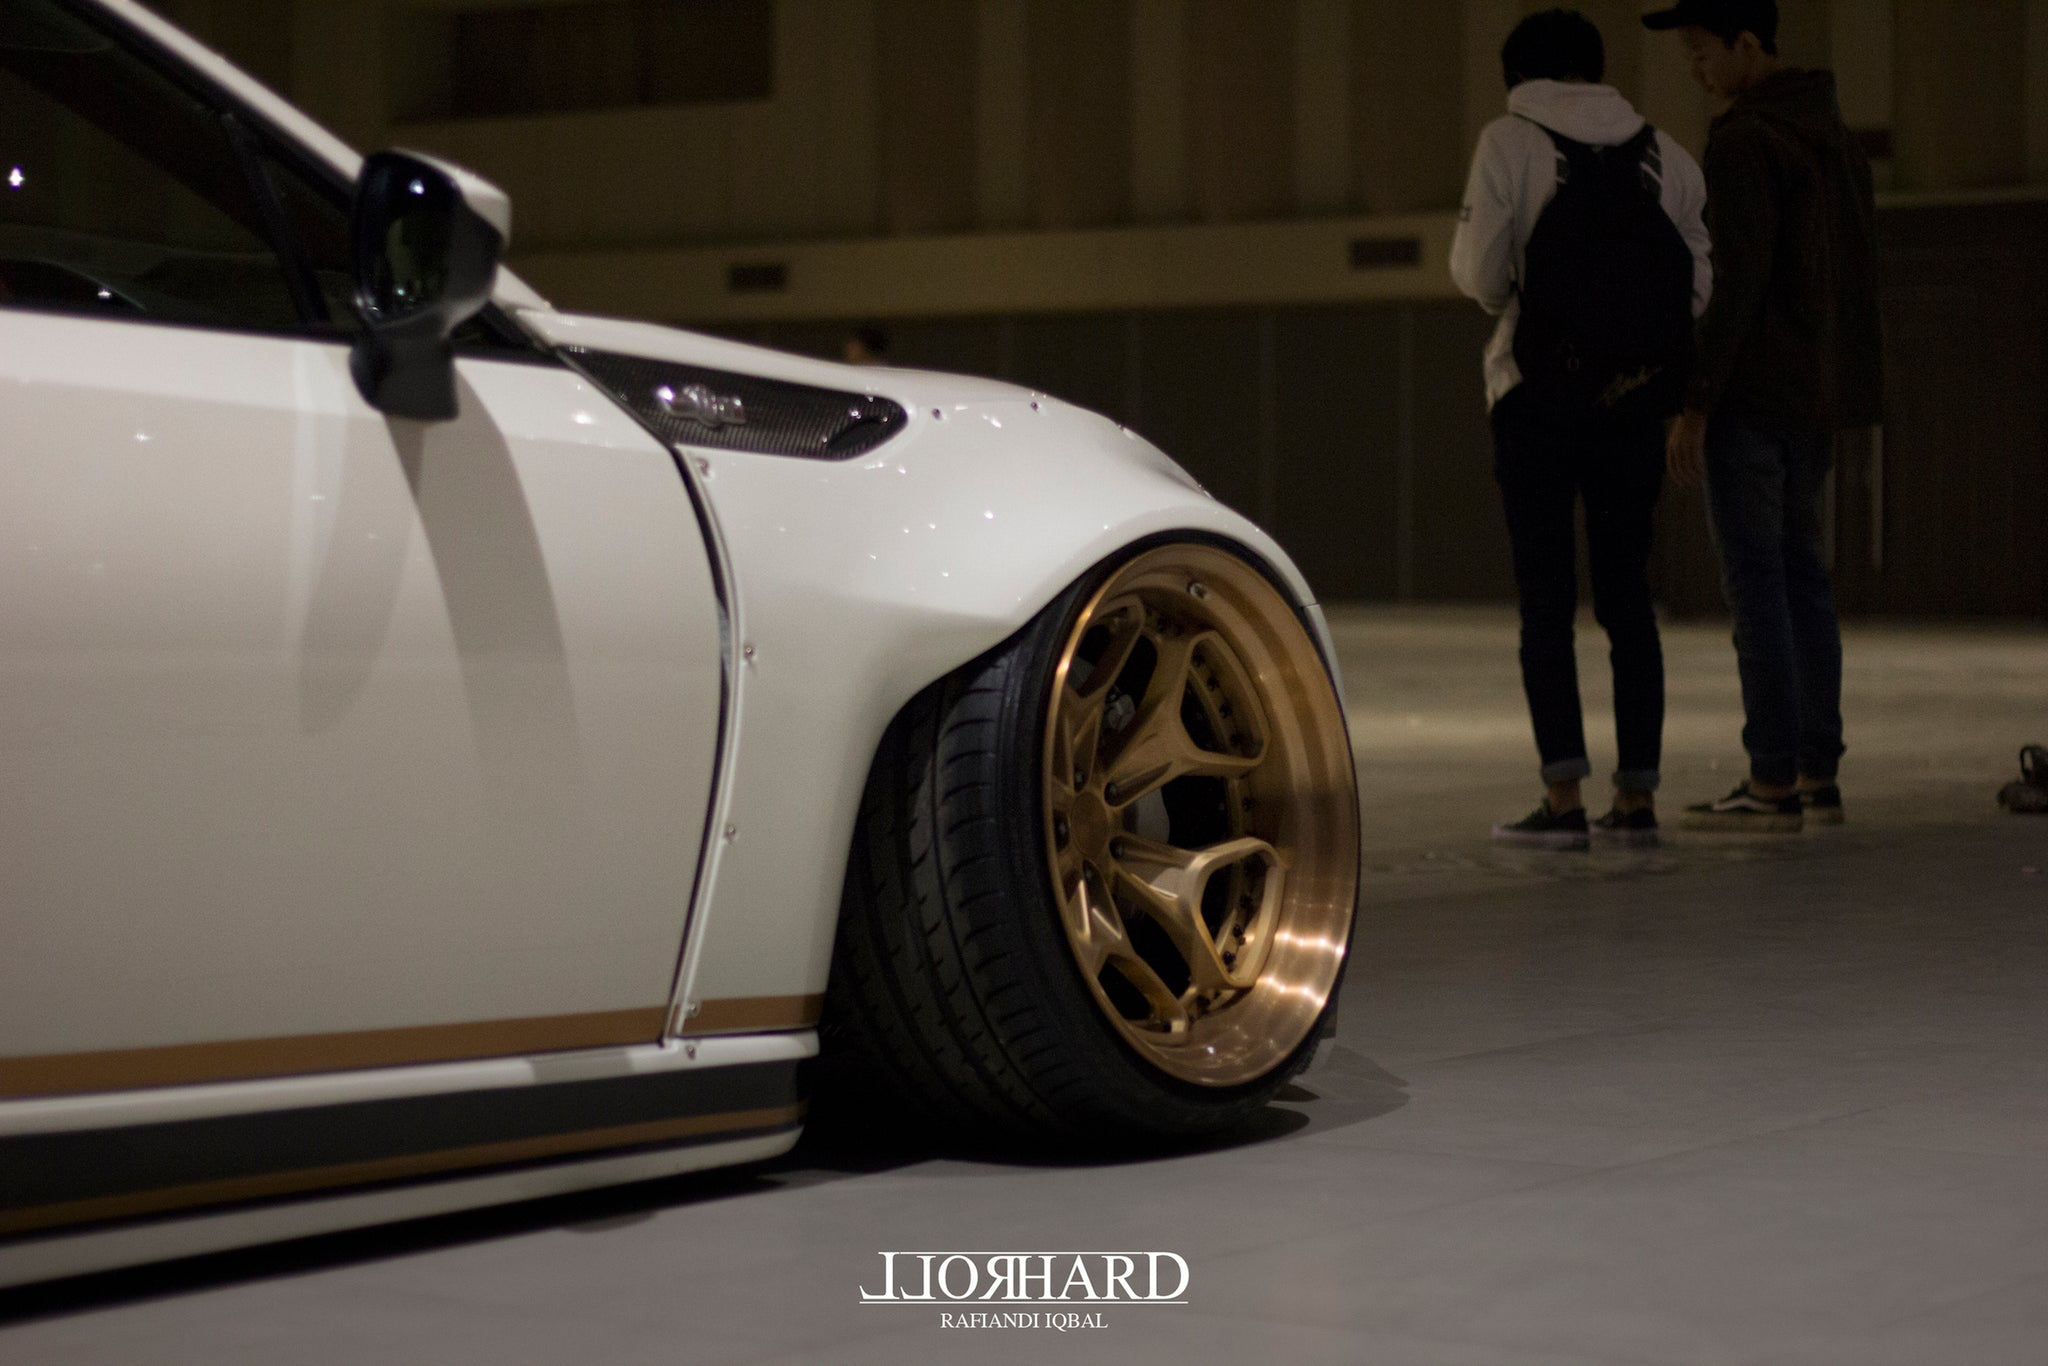 RollHard Event Coverage - East Crew 2018 Indonesia, Indonesian car culture, modified cars, custom cars, low cars, bbs wheels, airride, airlift, JDM, low cars, Pandang events, ilb drivers club, slam sanctuary, all makes all models one community